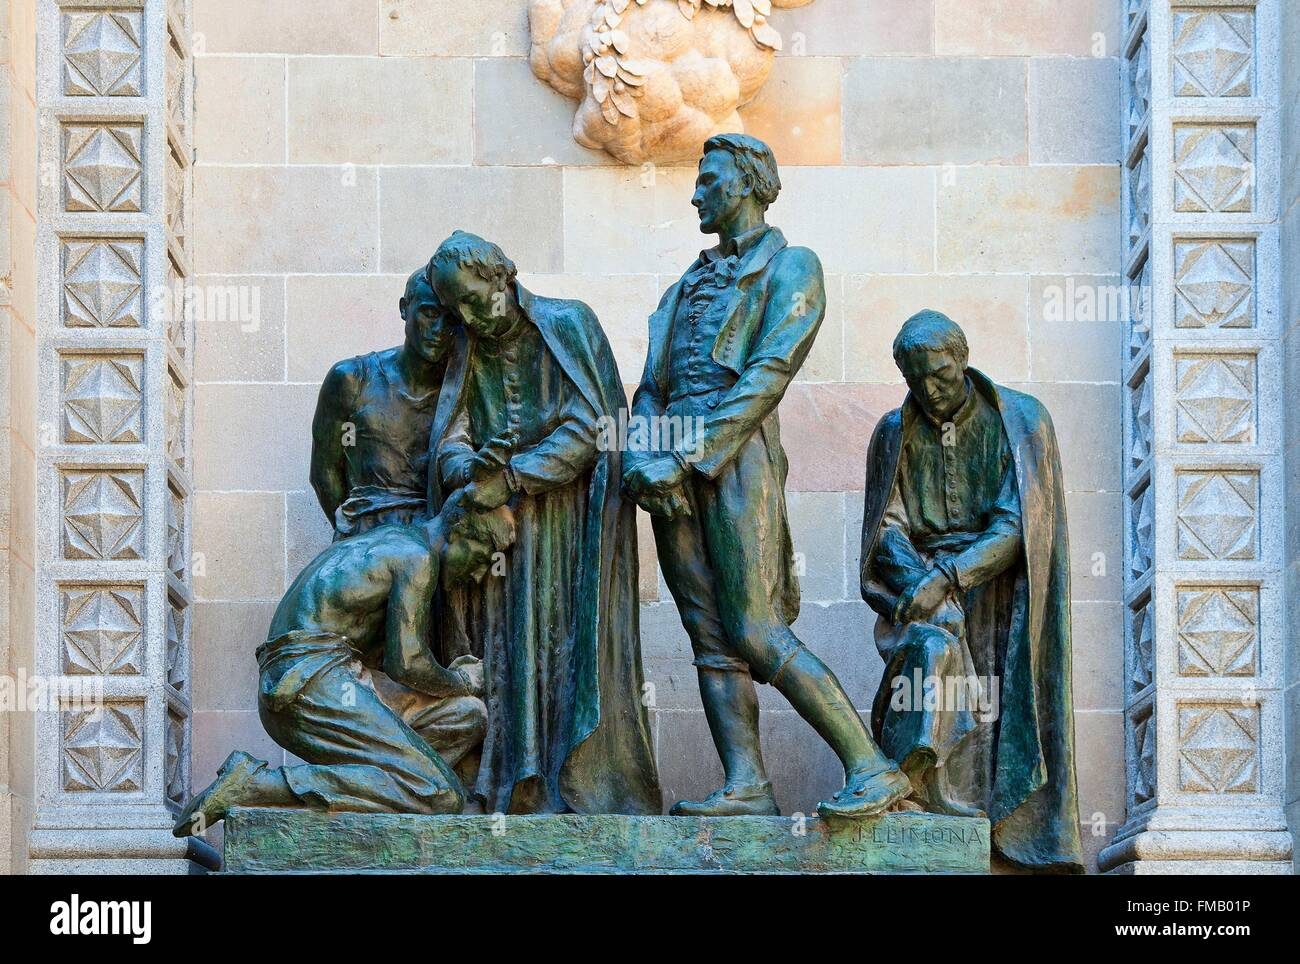 Spain, Catalonia, Barcelona, Sculpture group in the Barri Gotic - Stock Image